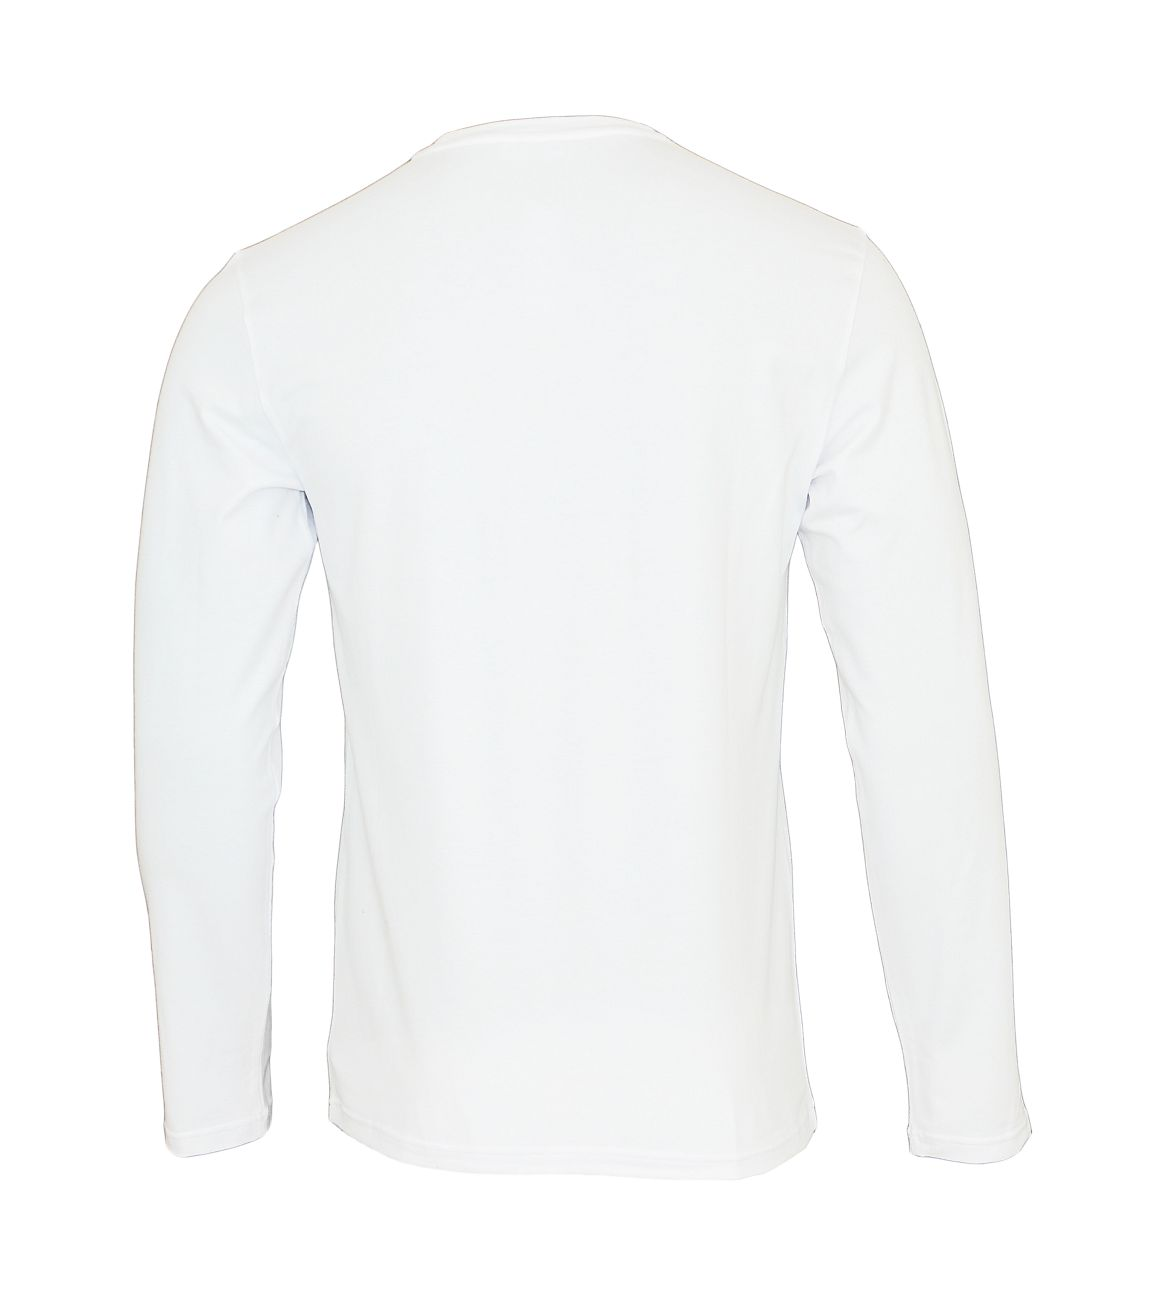 Emporio Armani Longsleeve Rundhals Shirt 111653 8A516 00010 BIANCO WX18-EAL